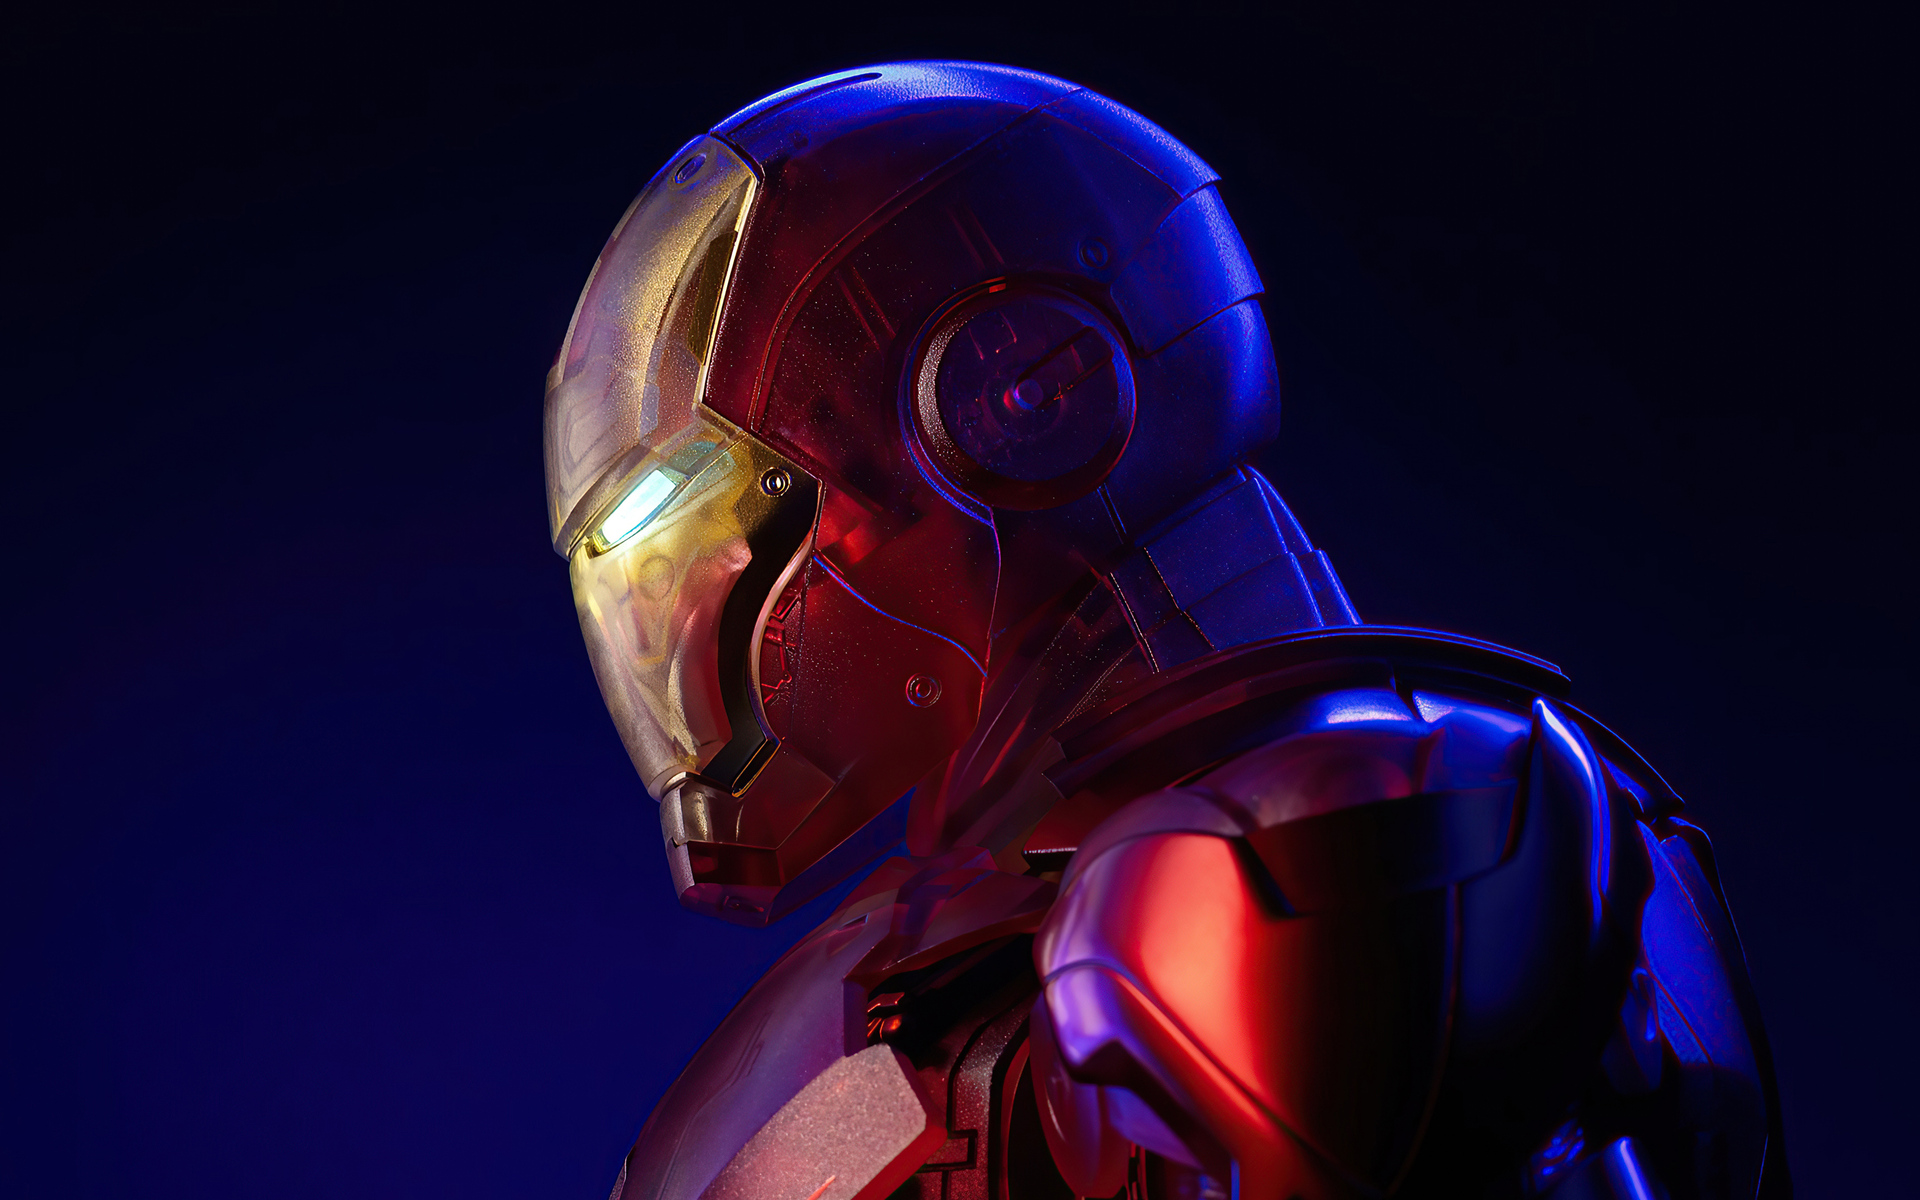 holographic-iron-man-4k-2020-6l.jpg